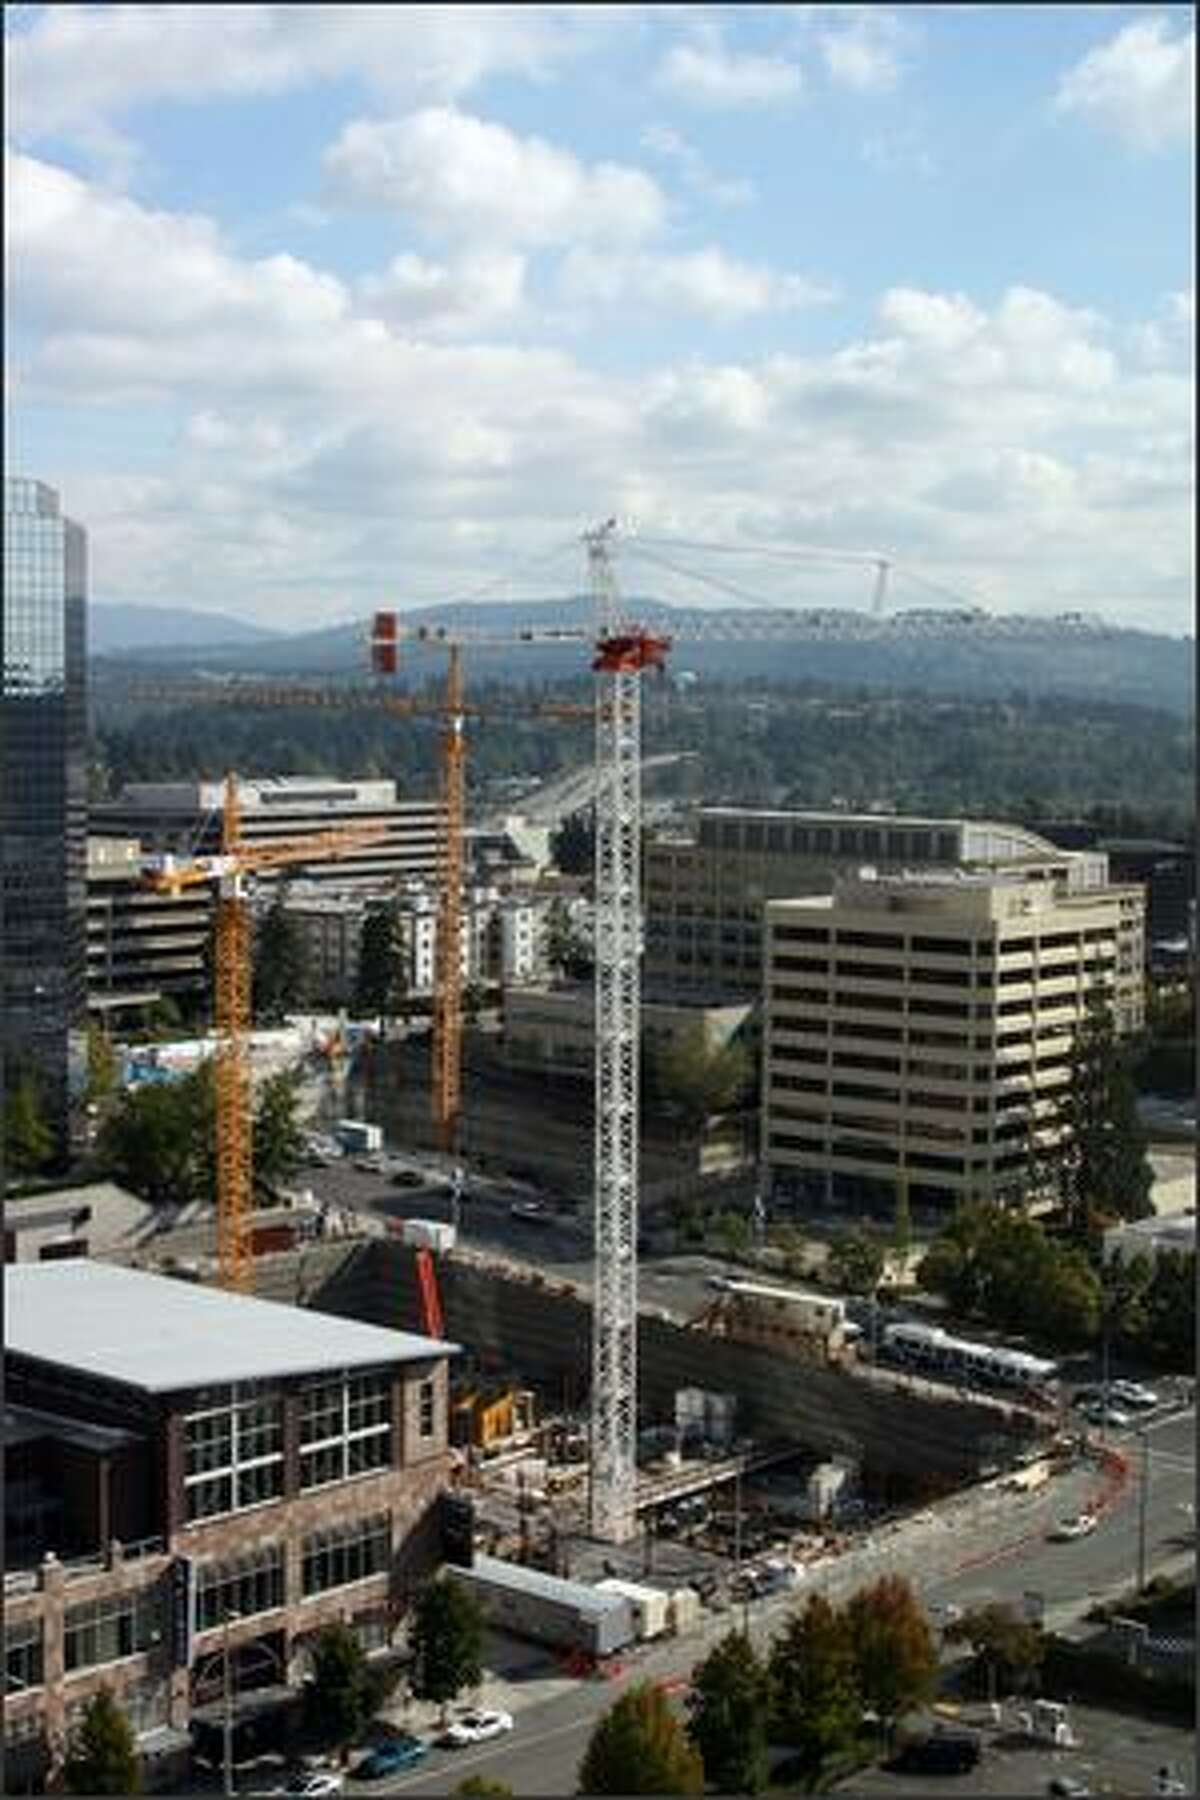 The crane in the middle of these three cranes is the one that toppled Nov. 16 in Bellevue. This photo is among those being used by investigators to determine what caused the accident.